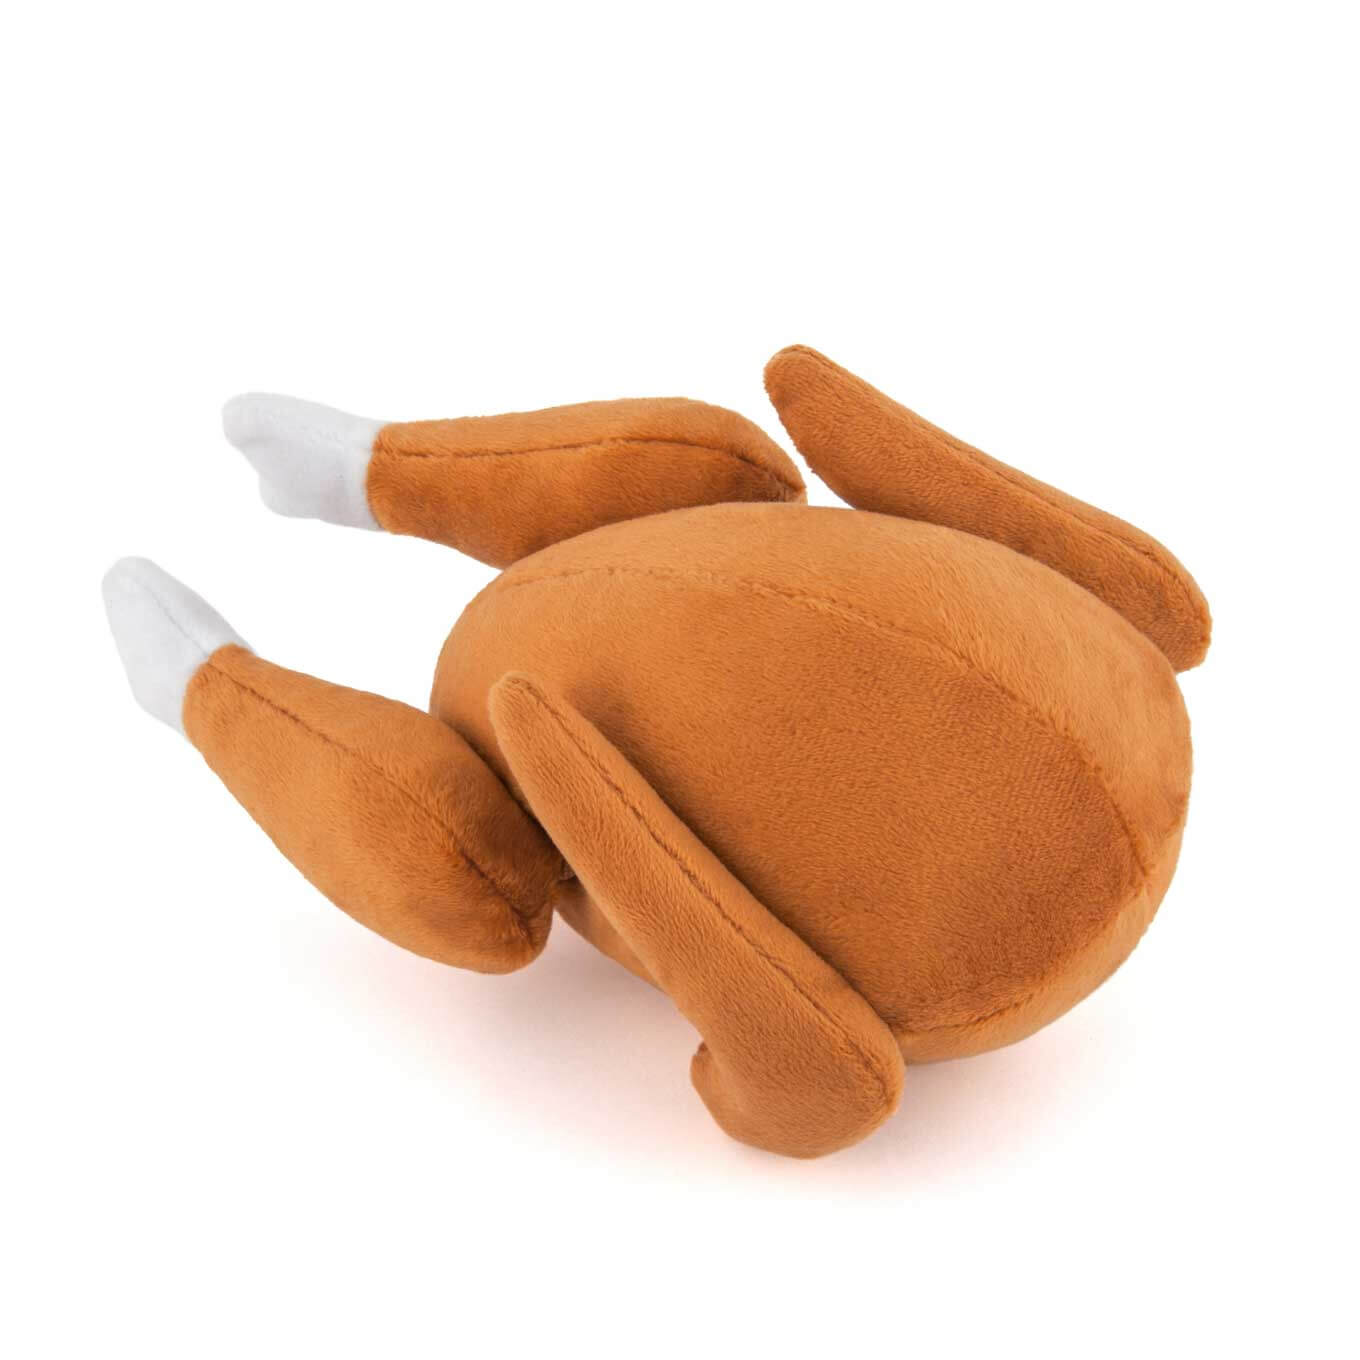 PLAY Holiday Classic Roasted Turkey Plush Toy - Vanillapup Online Pet Shop